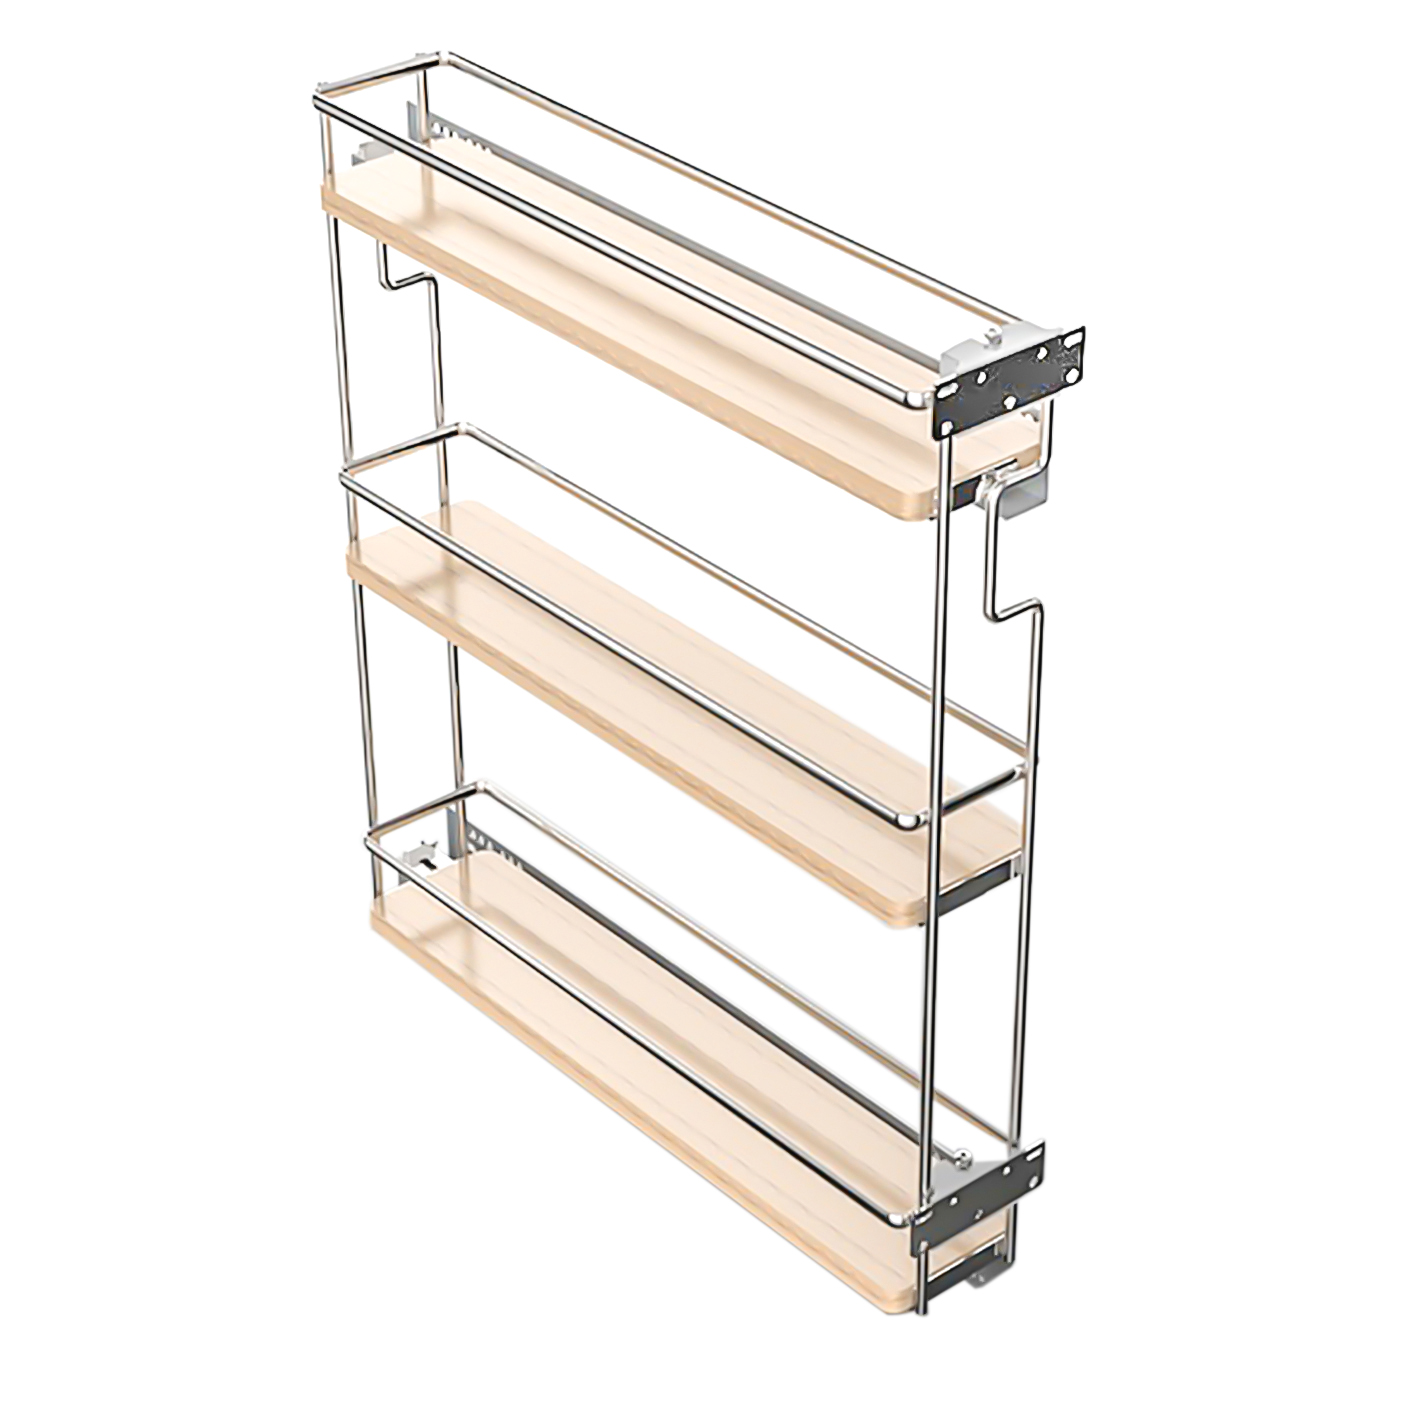 Spice Pull Out 3 Shelf 4 1 2 Open White Chrome Right